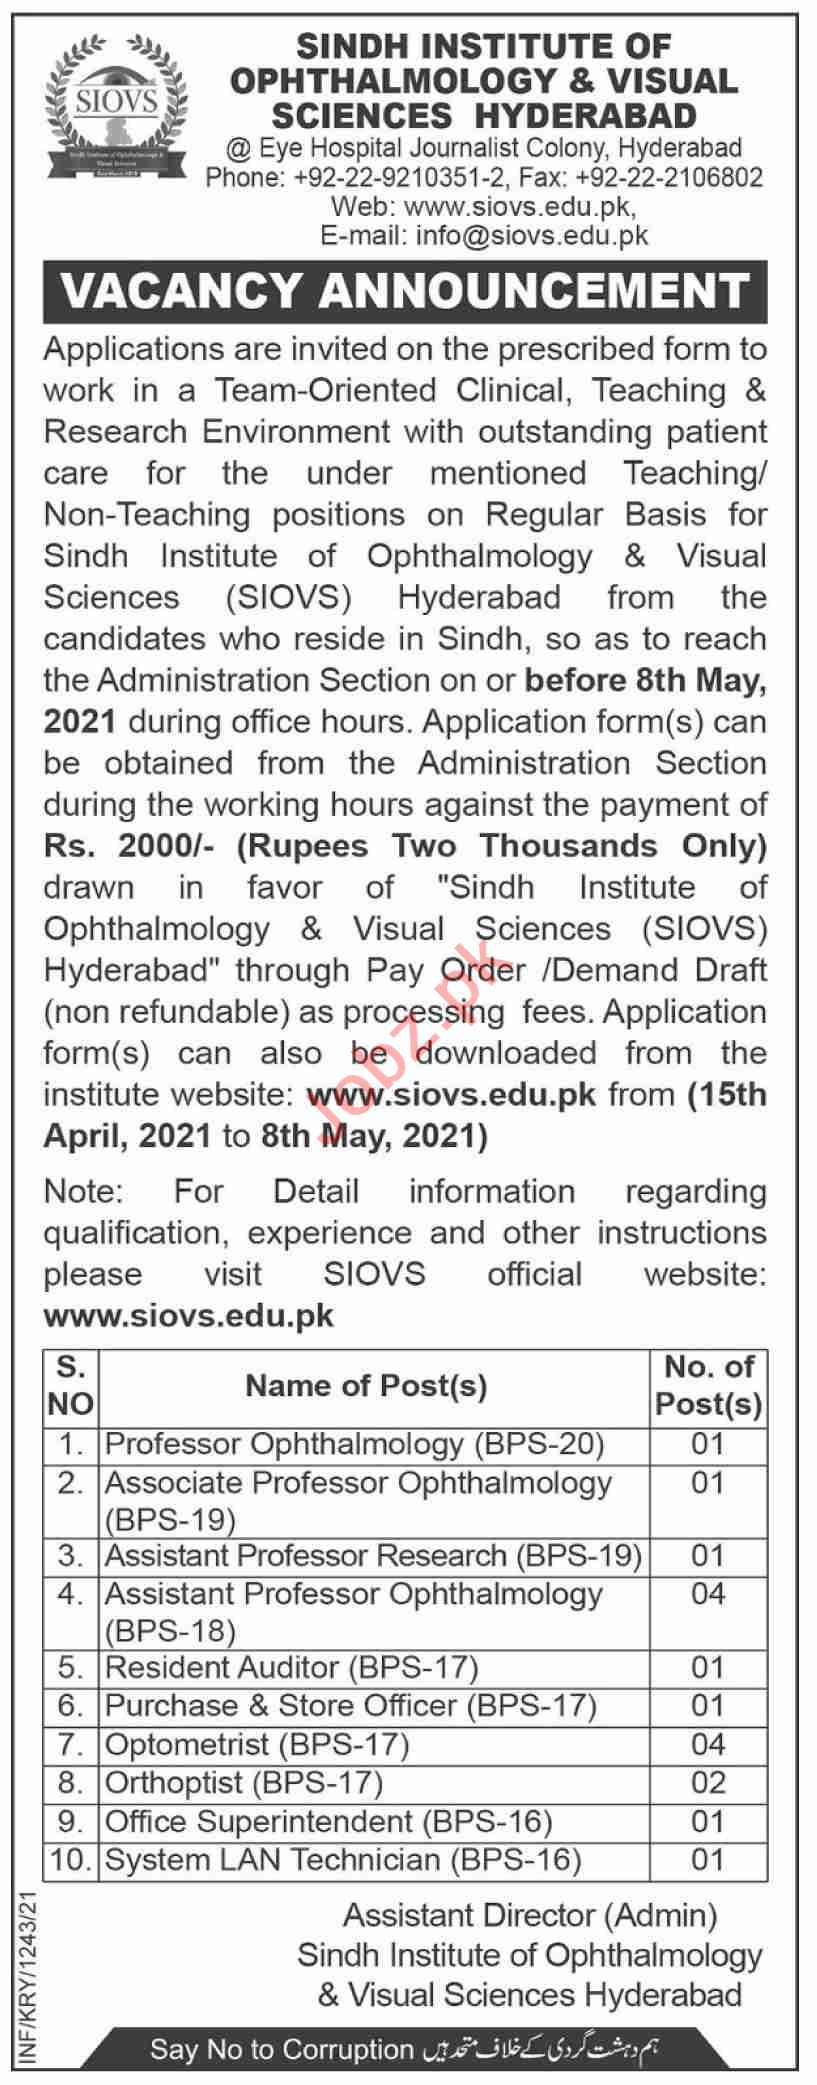 Sindh Institute of Ophthalmology SIOVS Hyderabad Jobs 2021